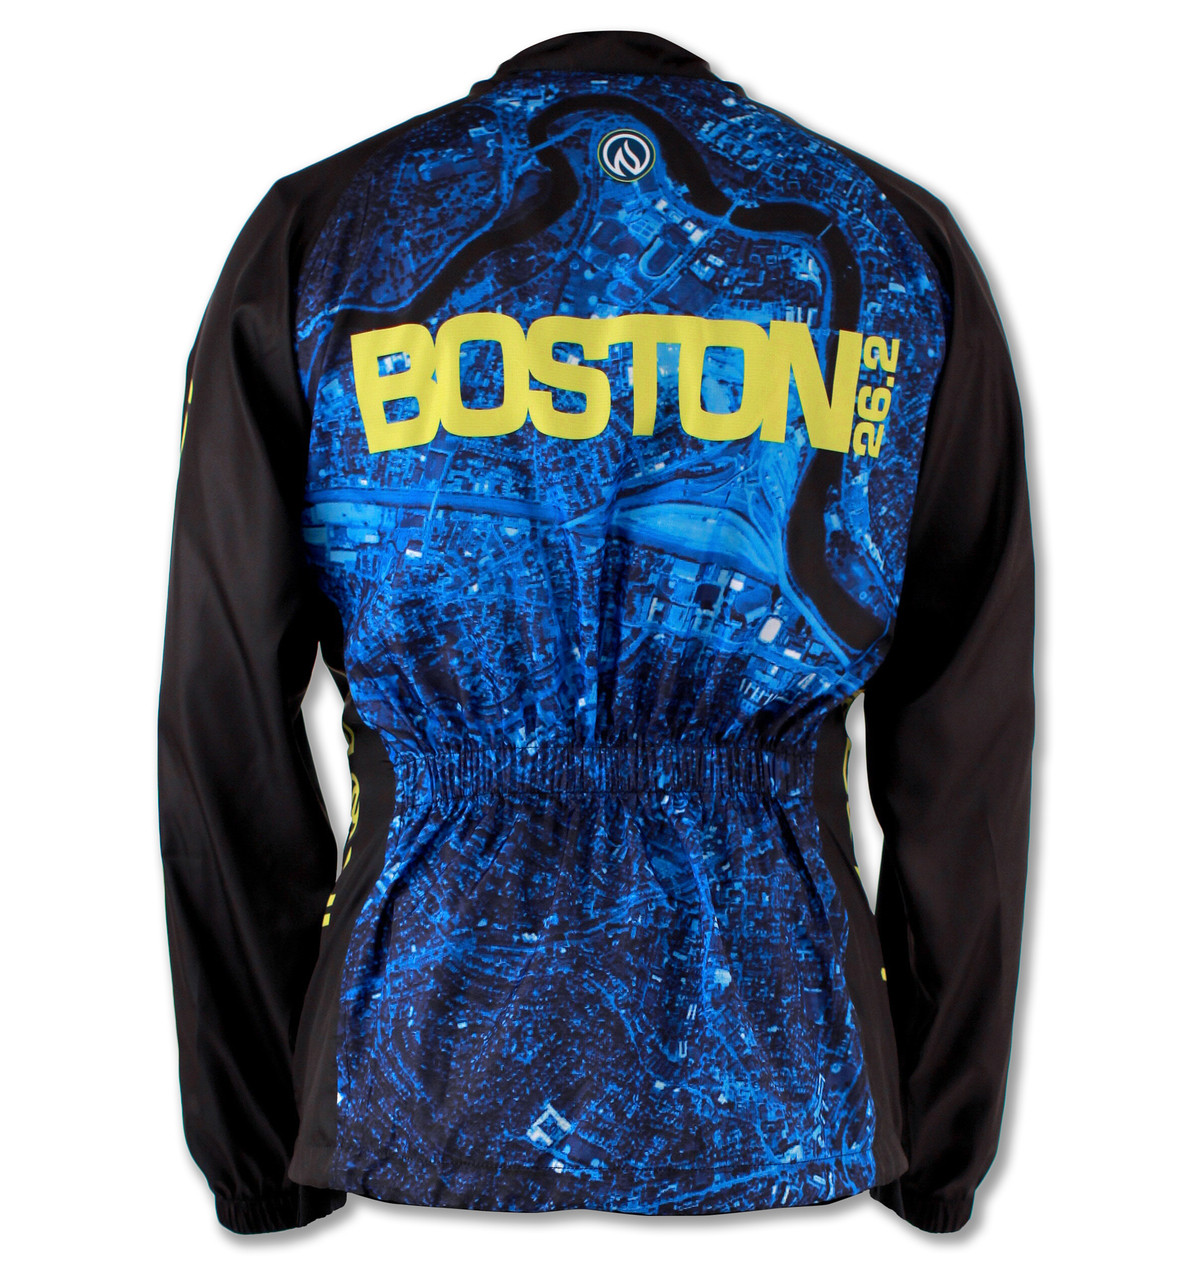 Women's 2015 Boston Windbreaker Jacket Back